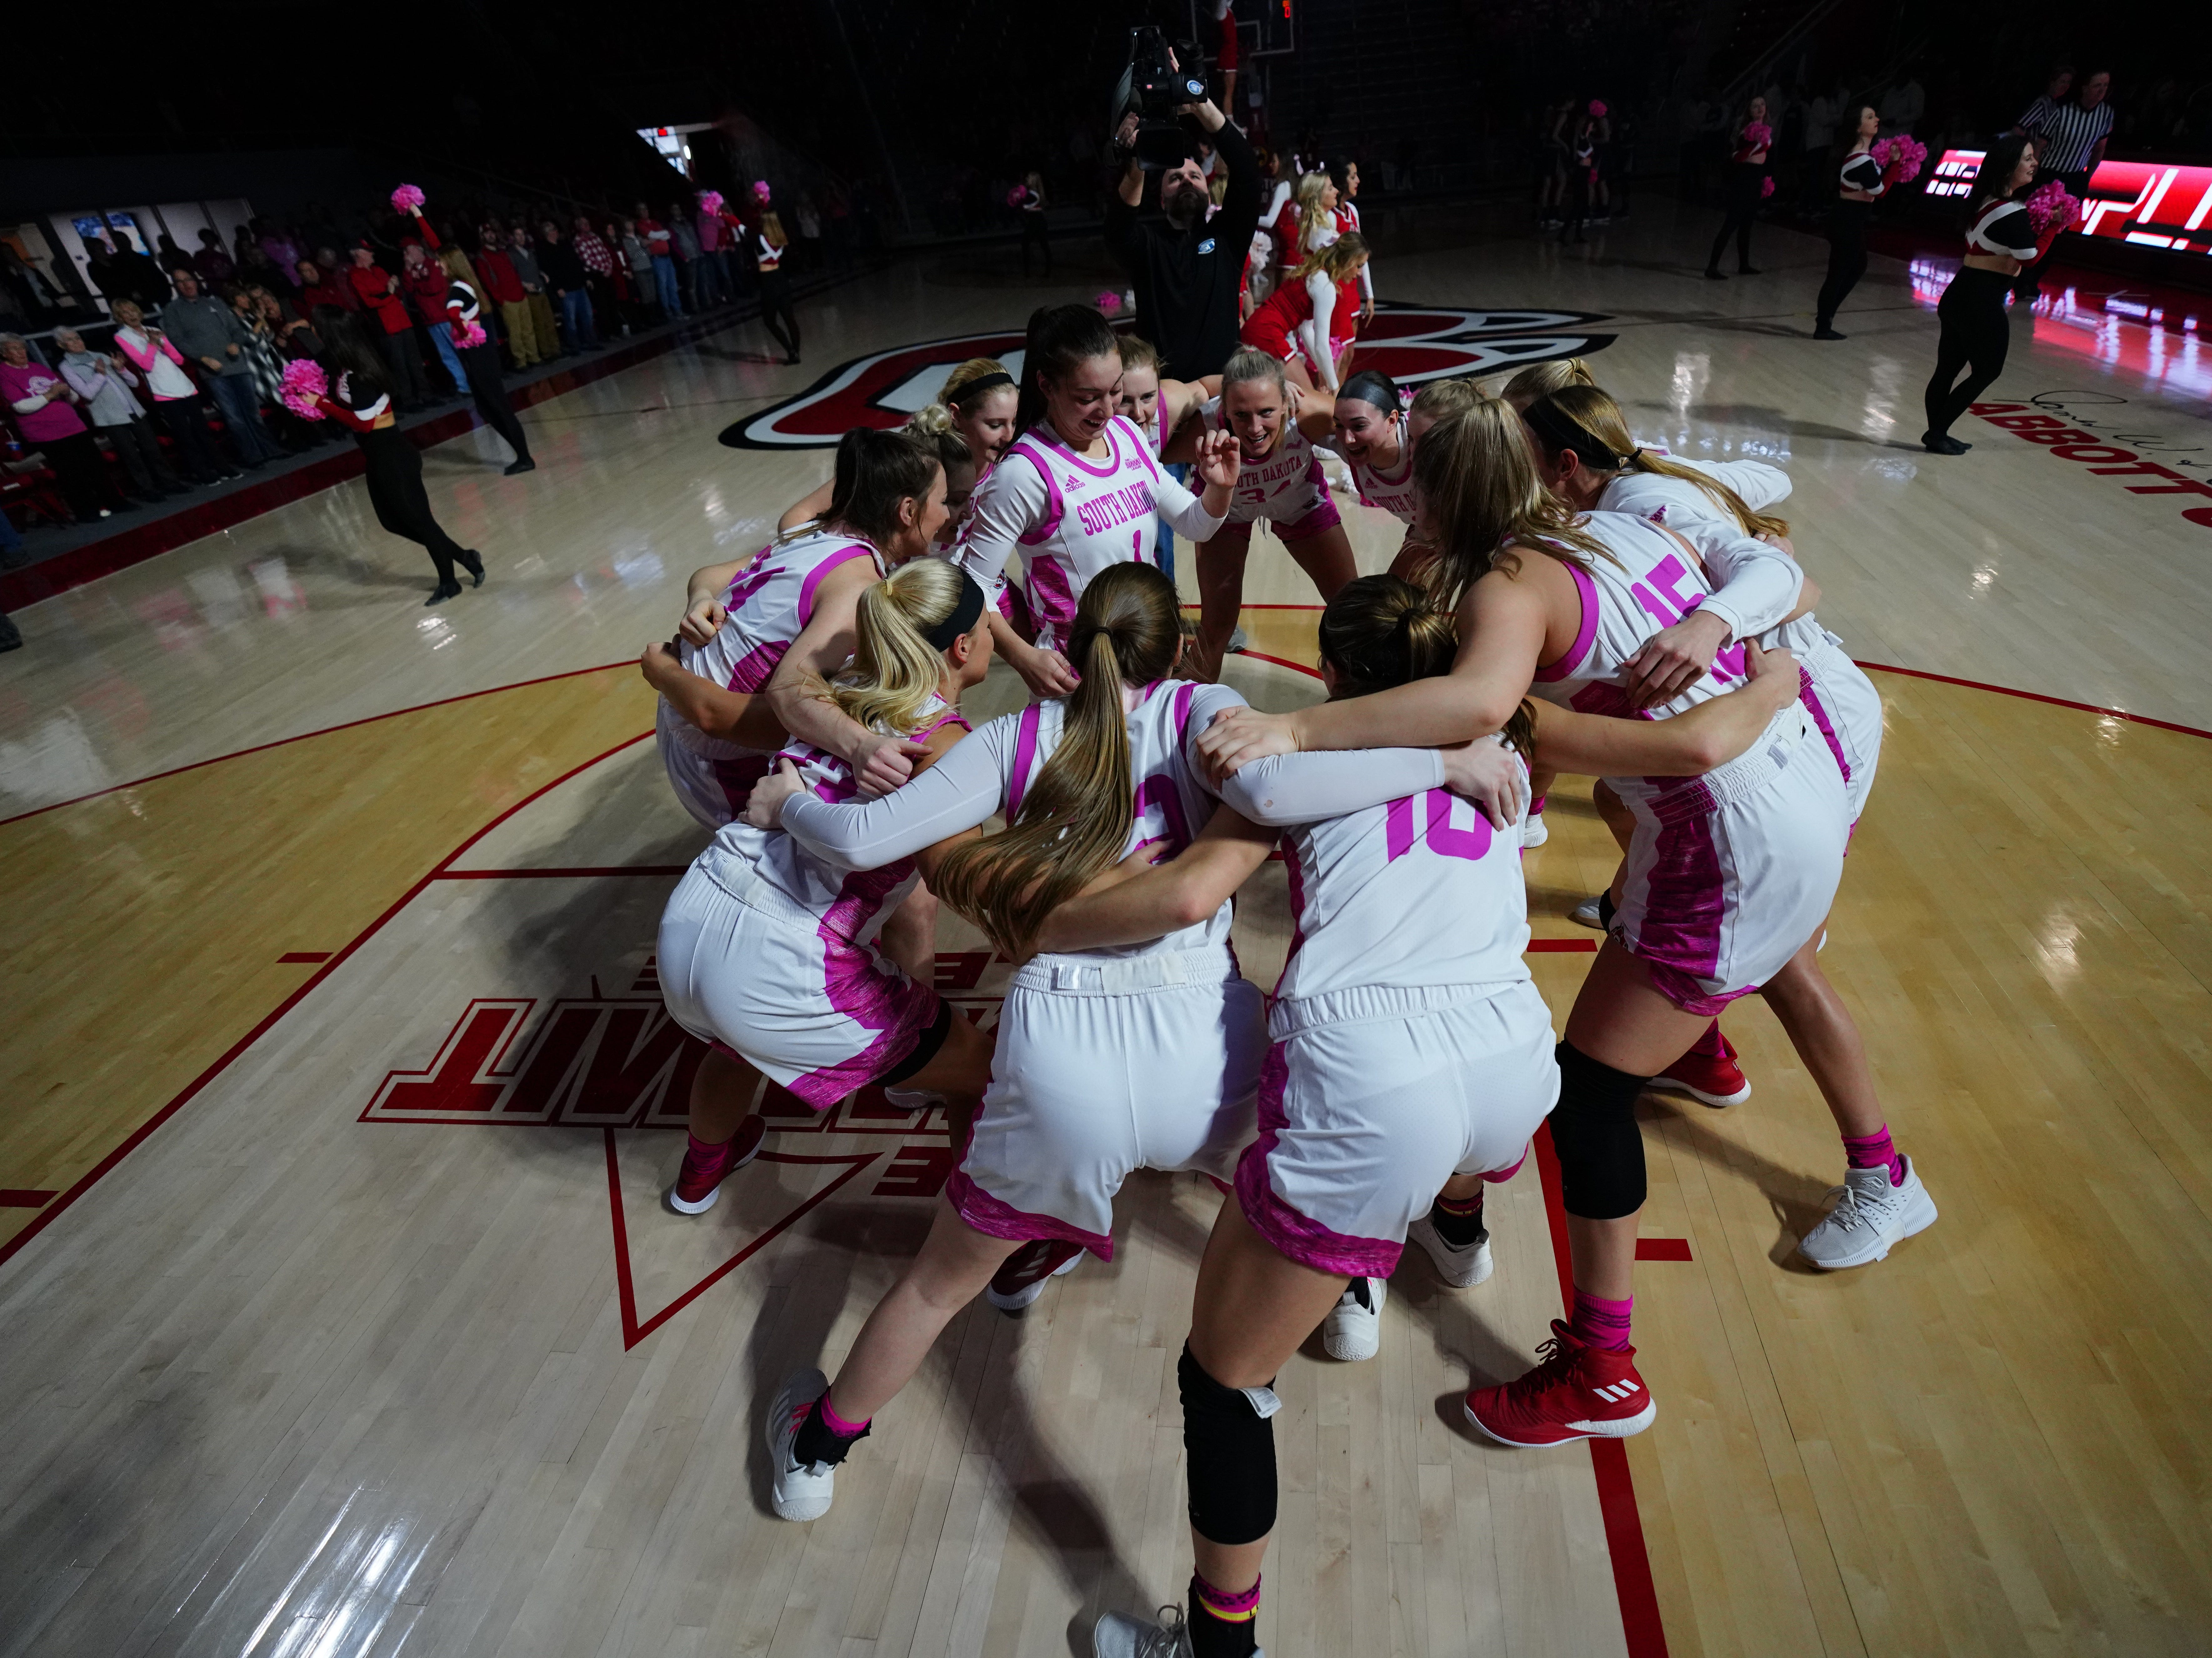 The South Dakota women's basketball team ahead of their game against Oral Roberts on Saturday, Feb. 9, 2019.